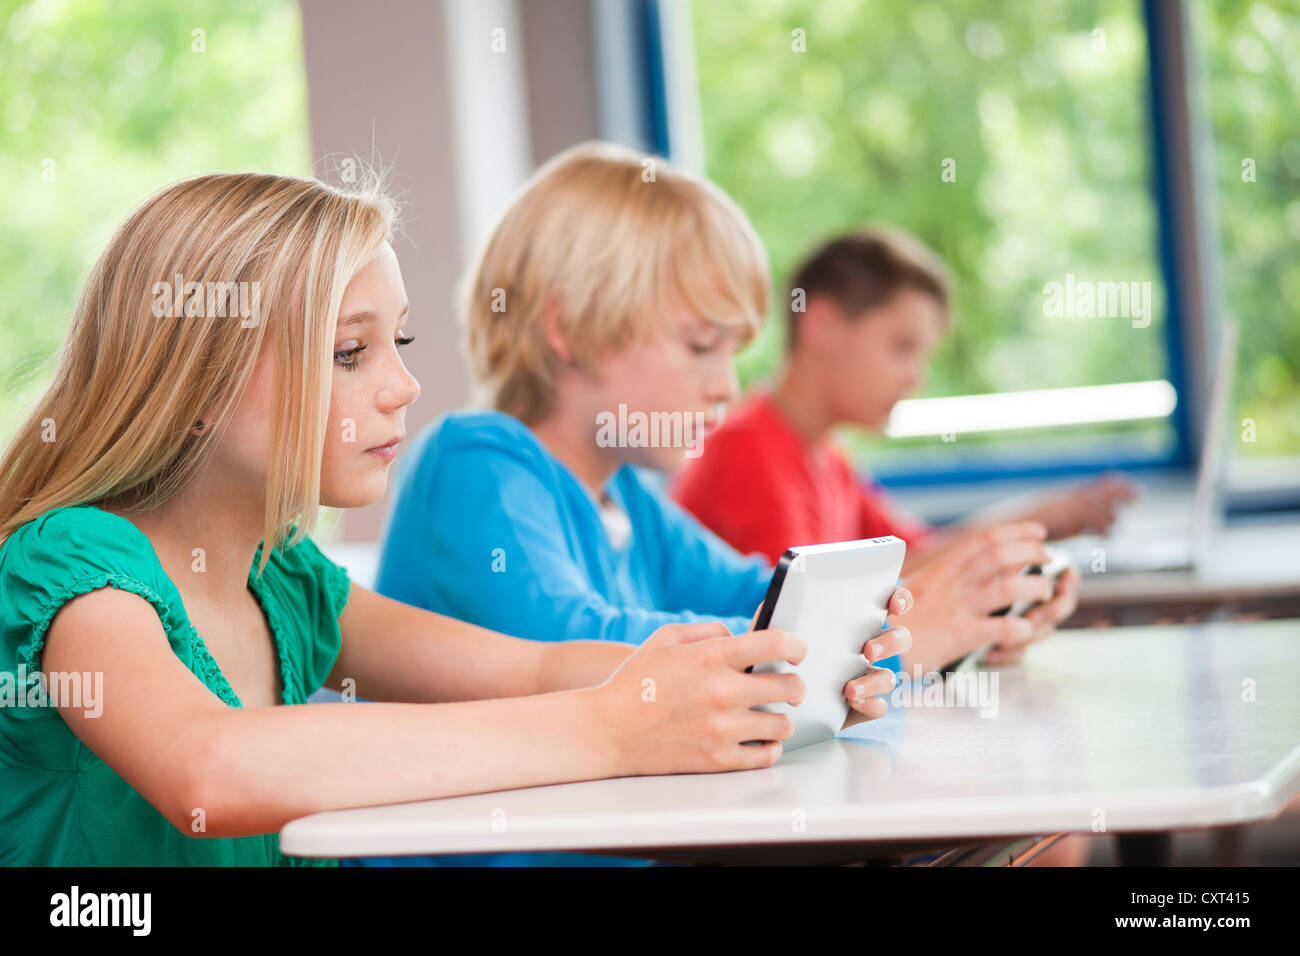 Group of schoolchildren working with computers in a classroom - Stock Image